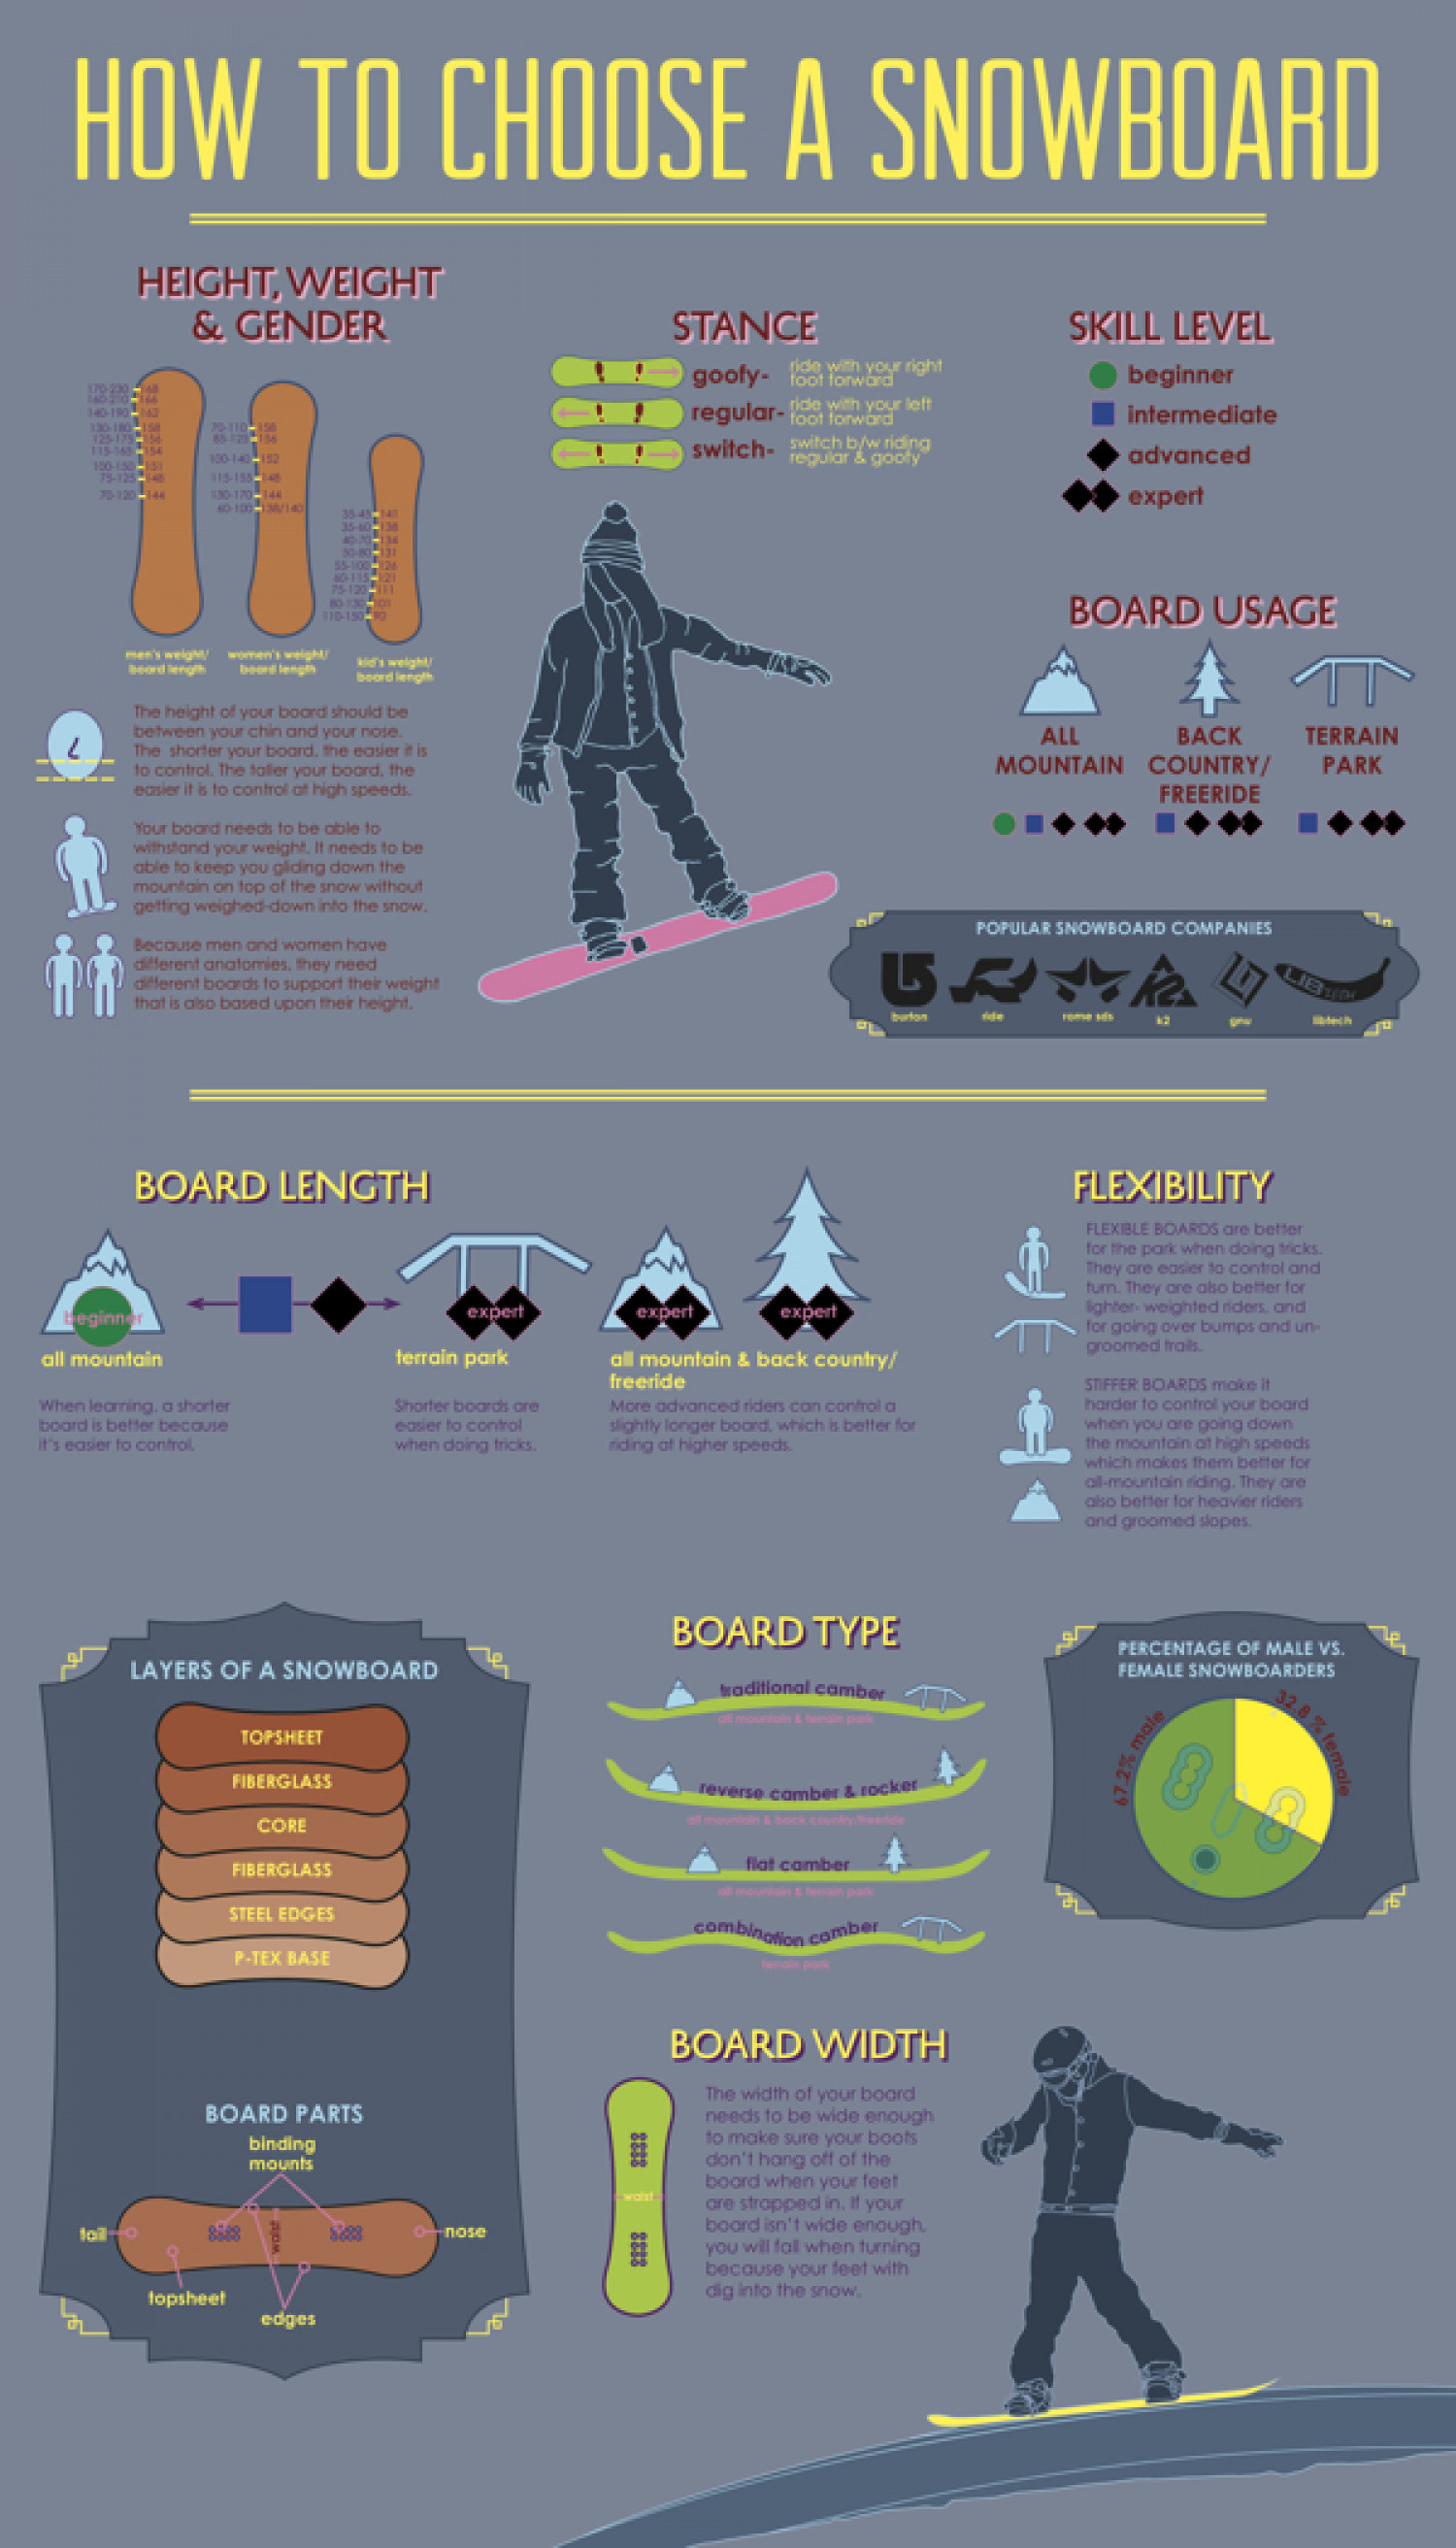 How to Choose a Snowboard for Full Fun Infographic